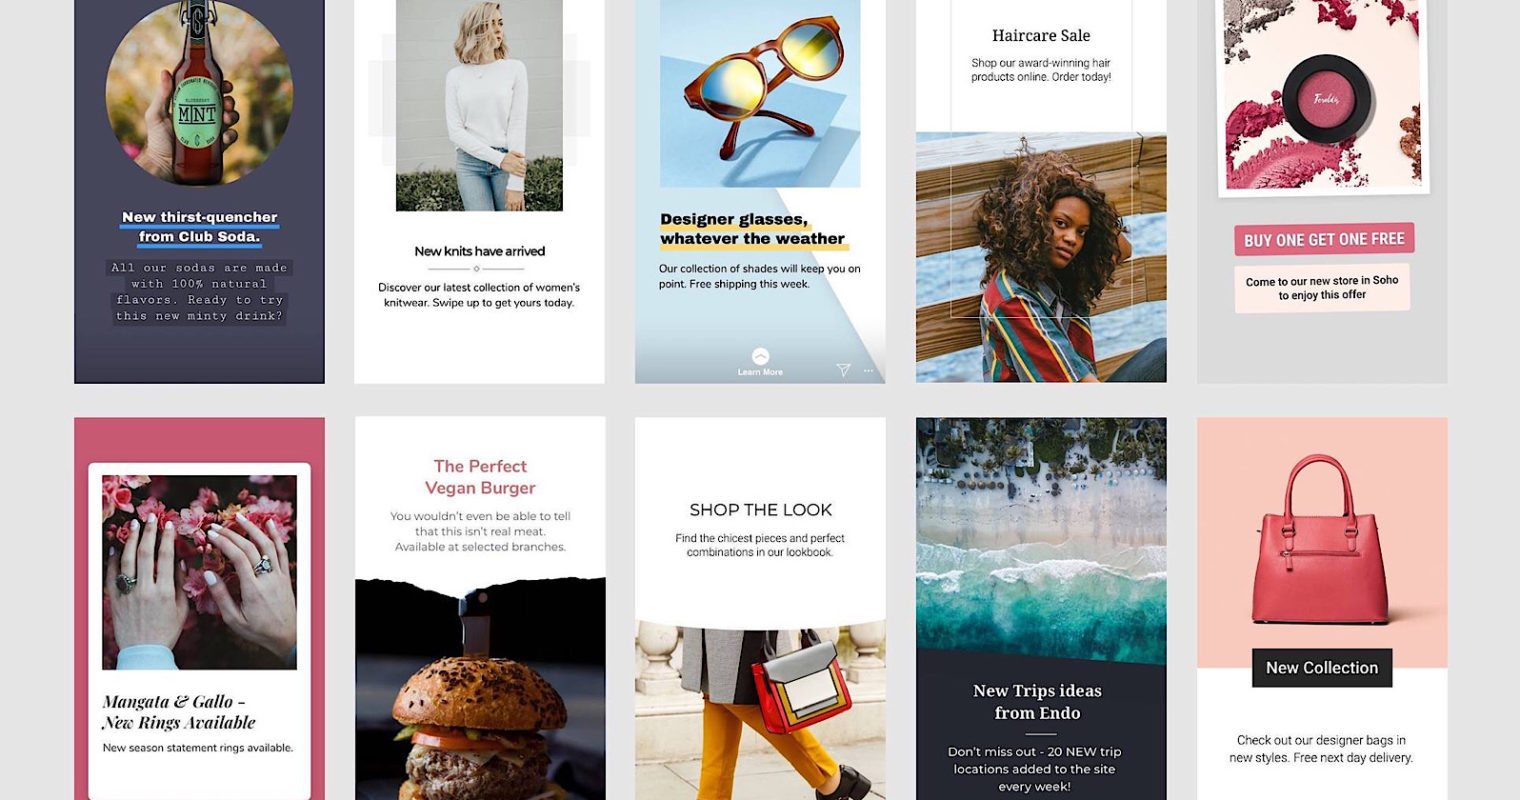 Facebook Introduces New Custom Templates for Stories Ads